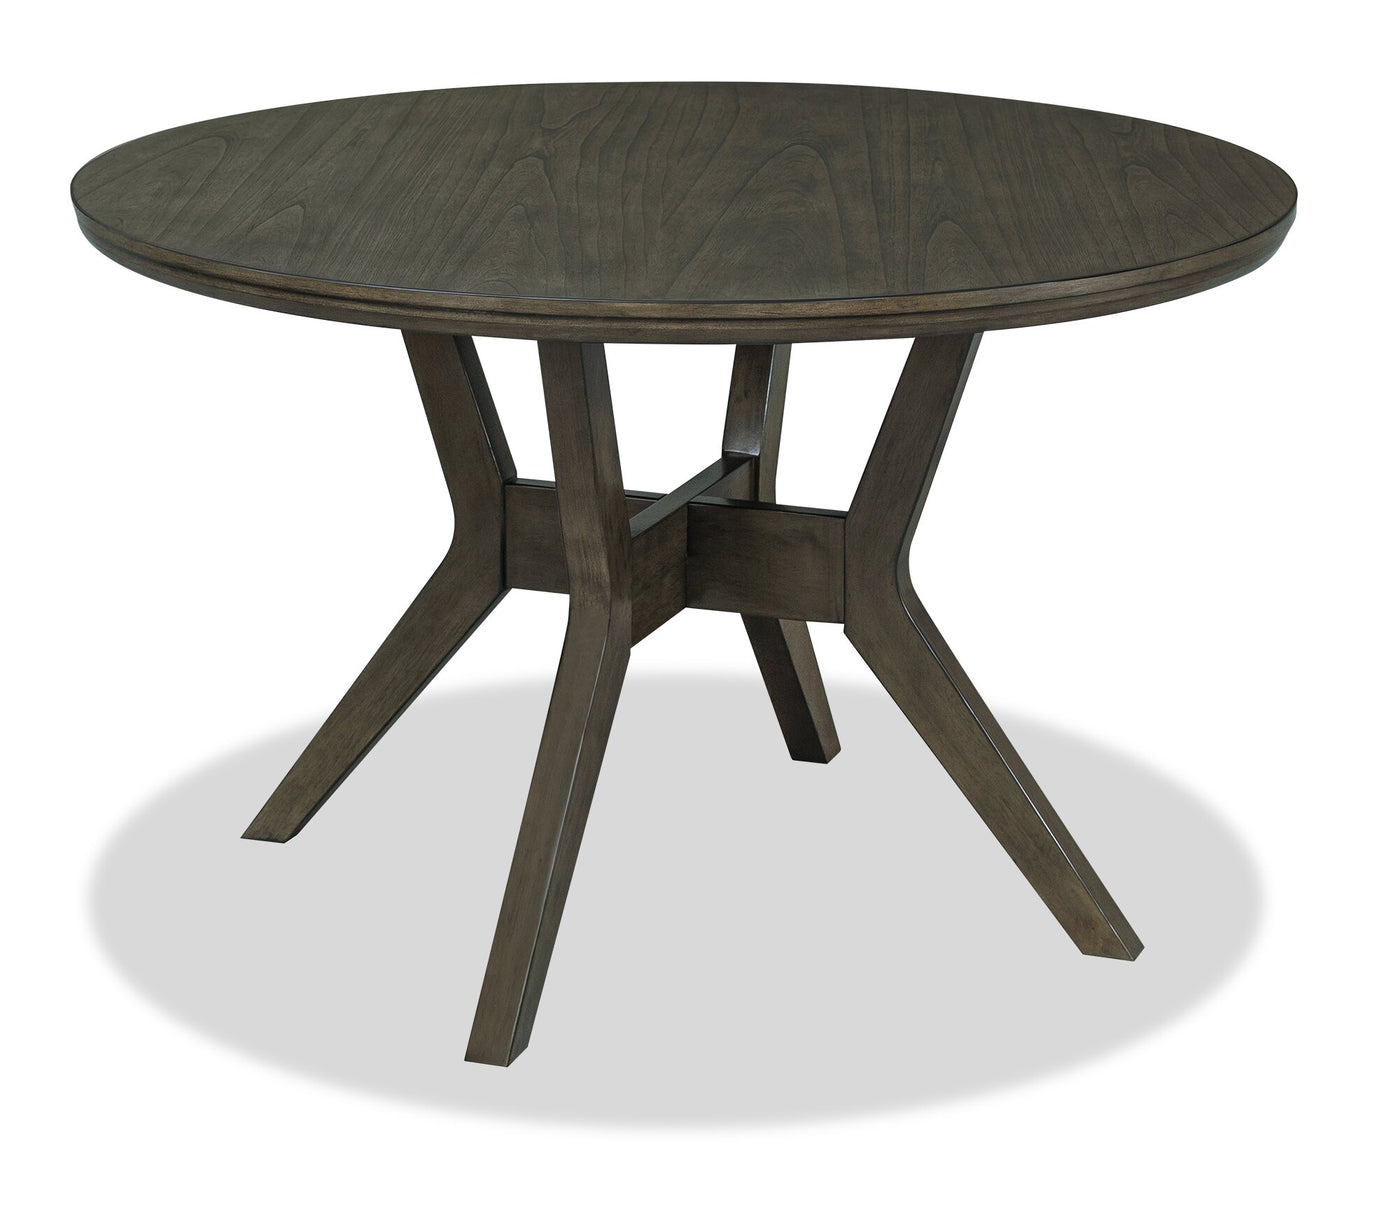 Chelsea Round Dining Table Grey Brown The Brick